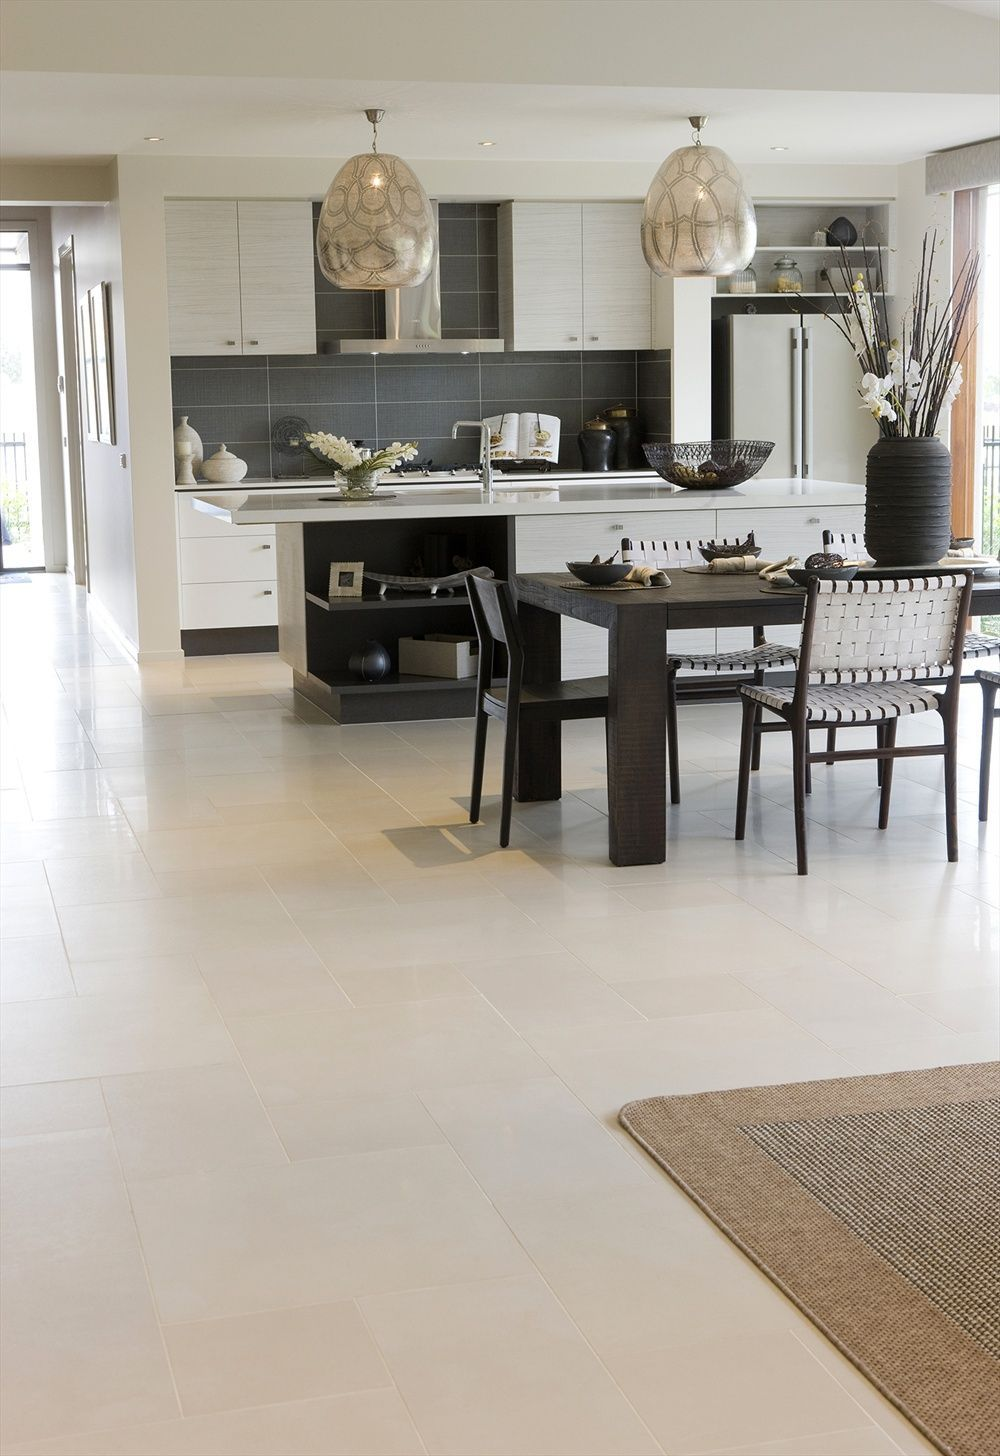 What Do You Think Of This Living Rooms Tile Idea I Got From Beaumont Tiles Check Out More Ideas Here Tile Com Au Roomideas Aspx Pisos Suelos Cocinas Modernas